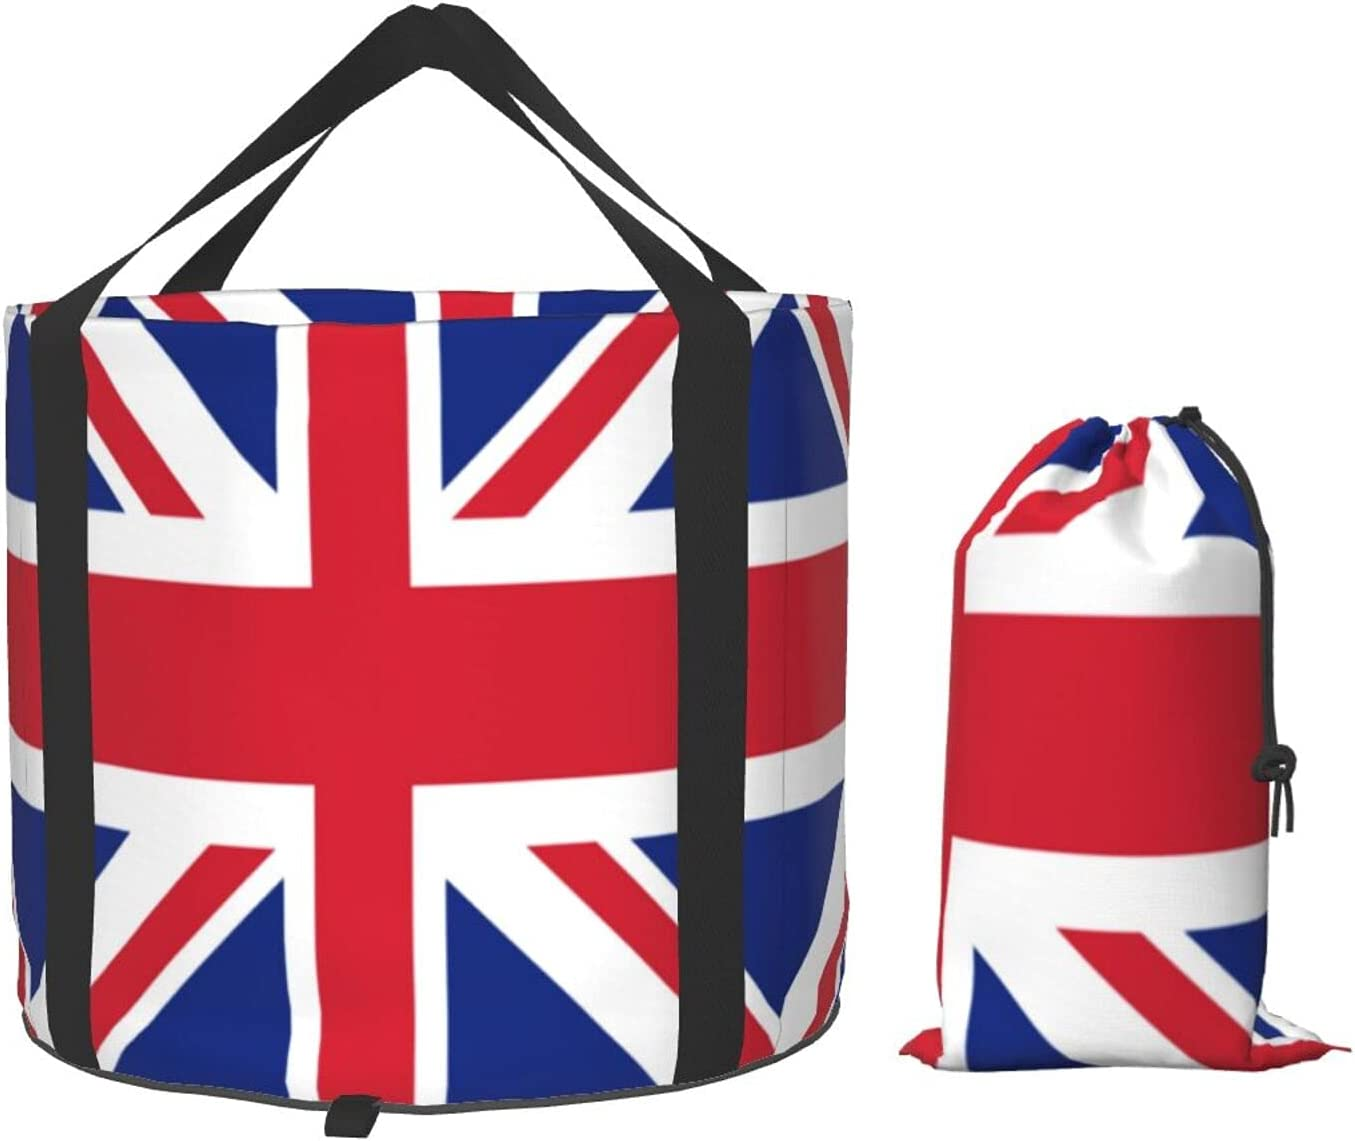 Multifunctional Portable Collapsible Bucket All items in the store UK Kingdom Choice United Fl